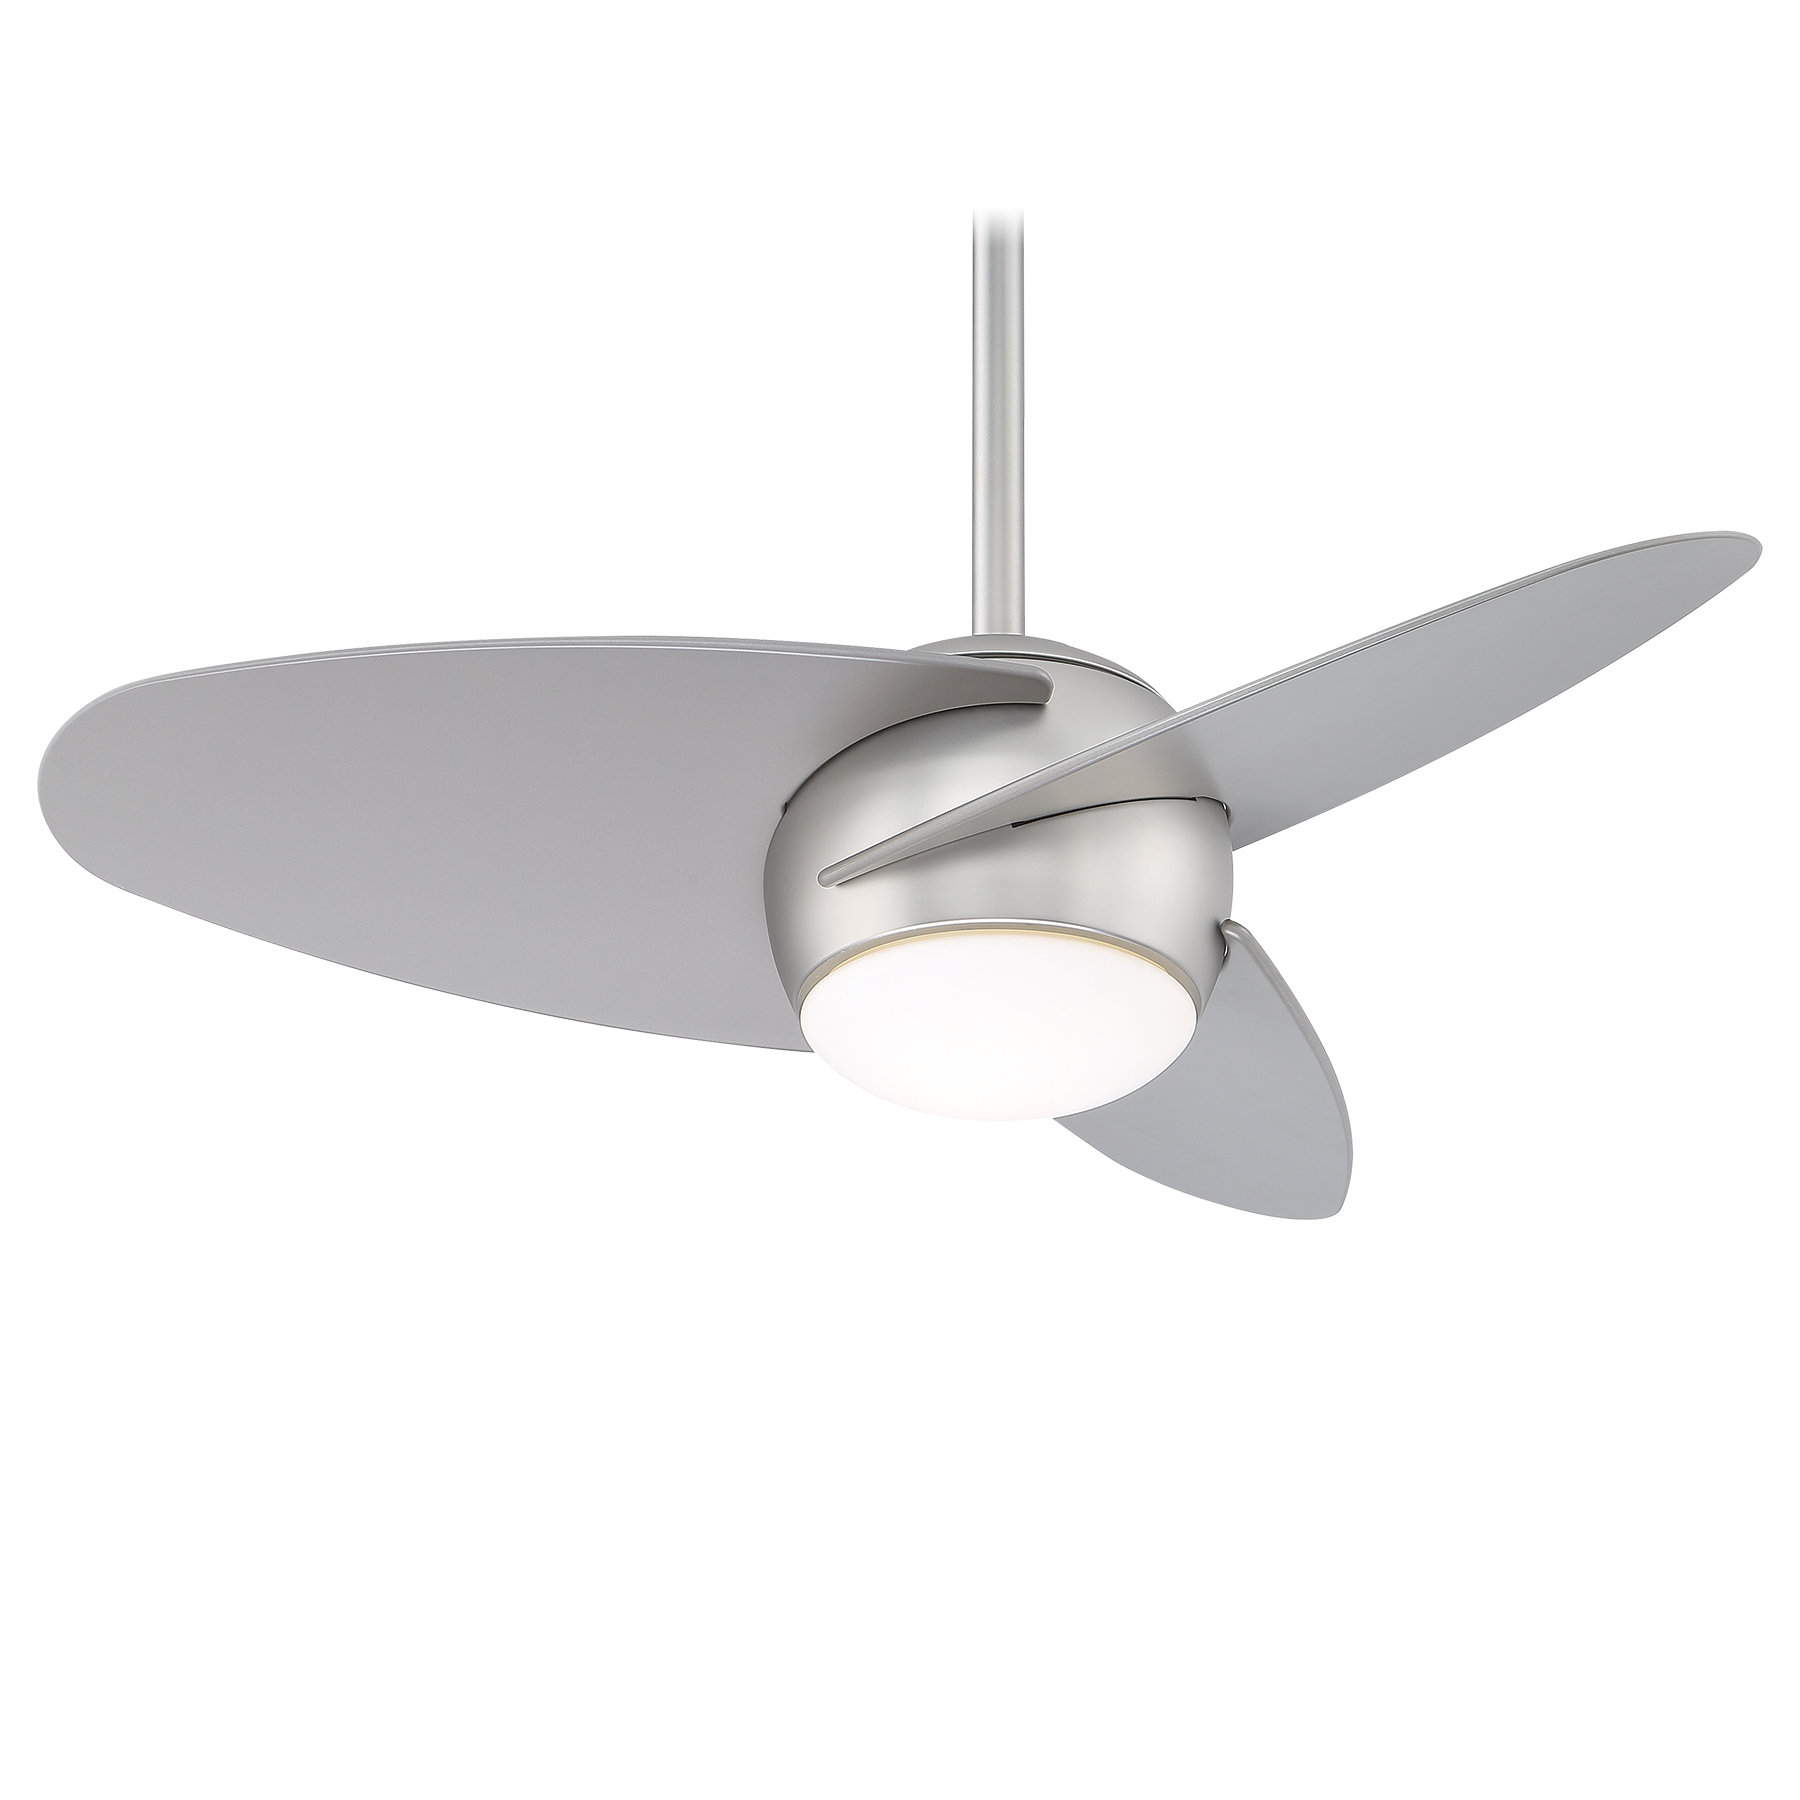 "Famous 36"" Slant 3 Blade Led Ceiling Fan With Concept Ii 3 Blade Led Ceiling Fans With Remote (View 7 of 20)"